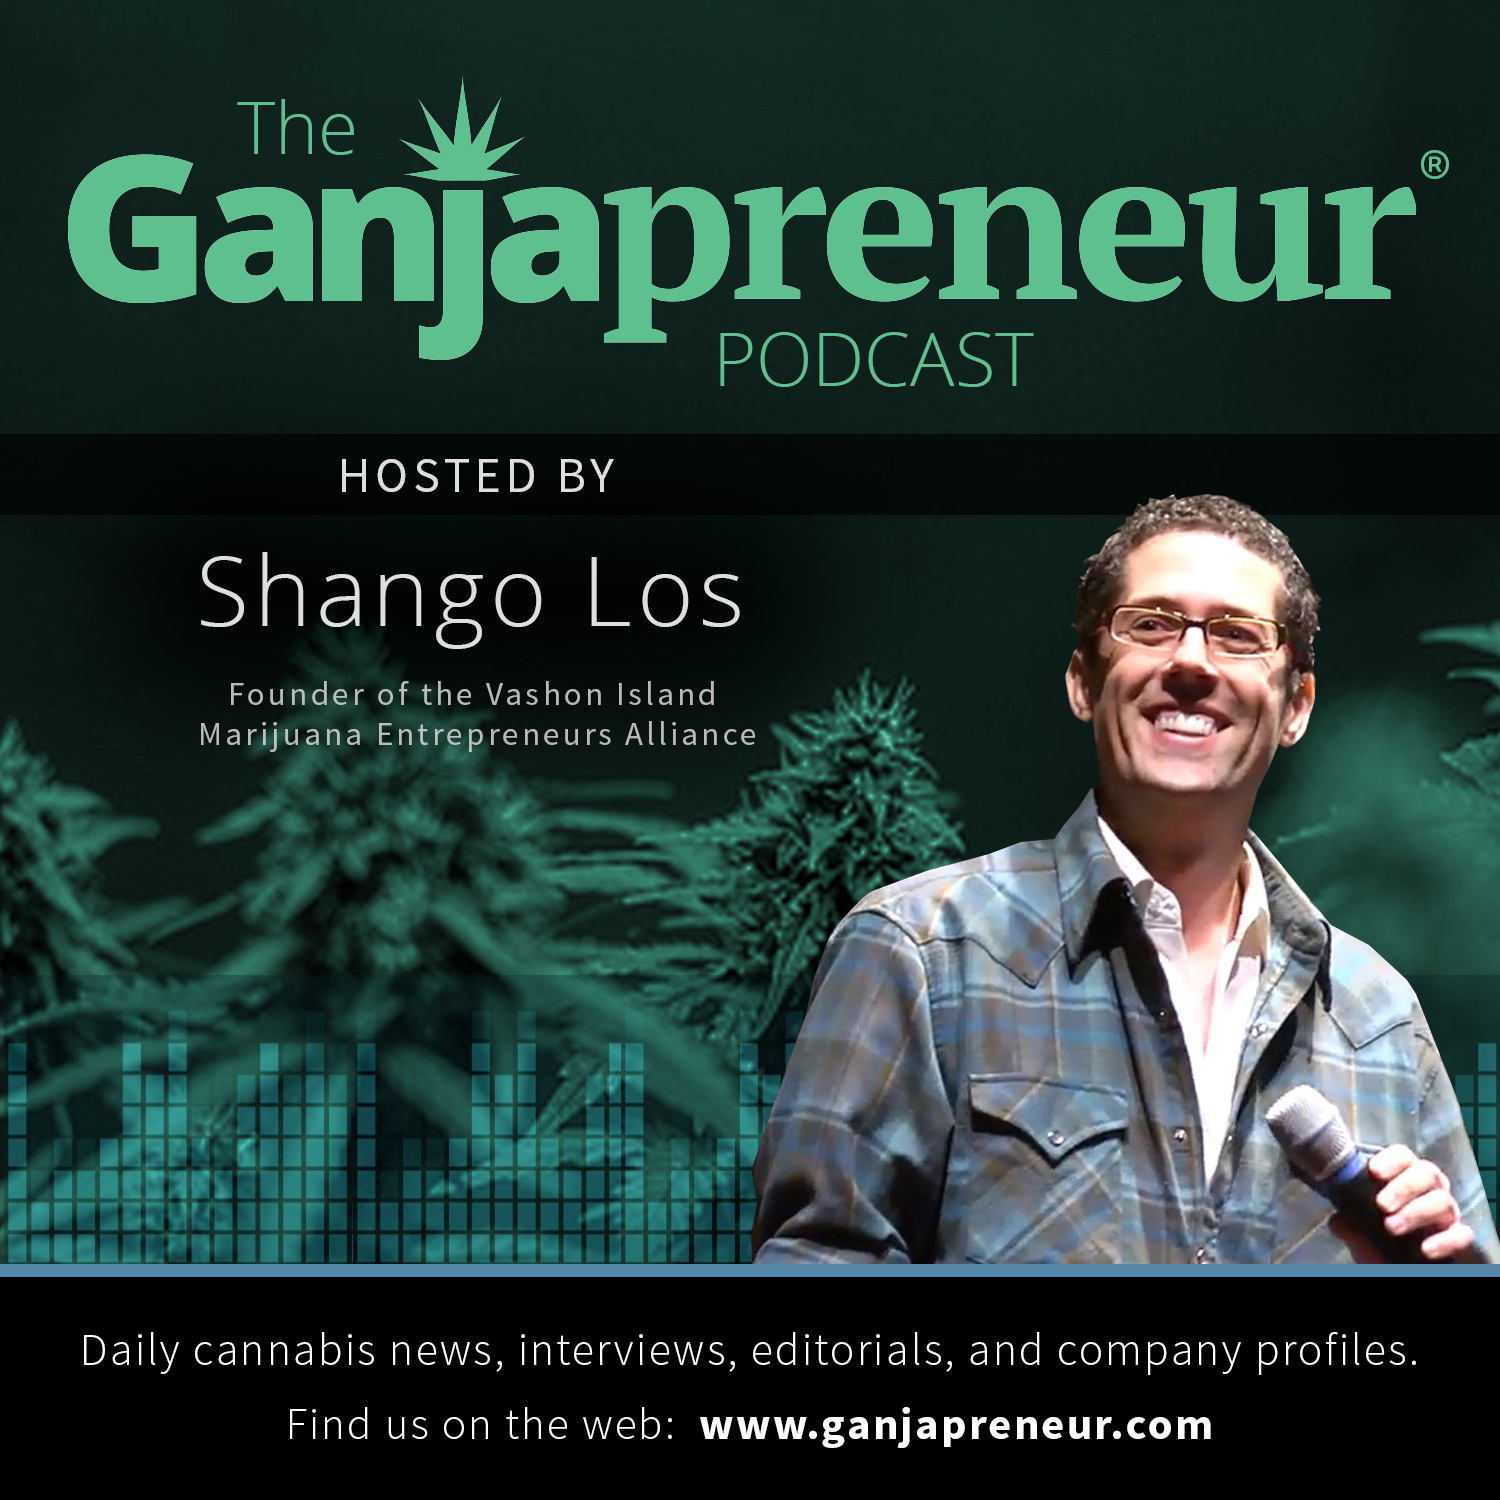 The Ganjapreneur Podcast – Ganjapreneur.com